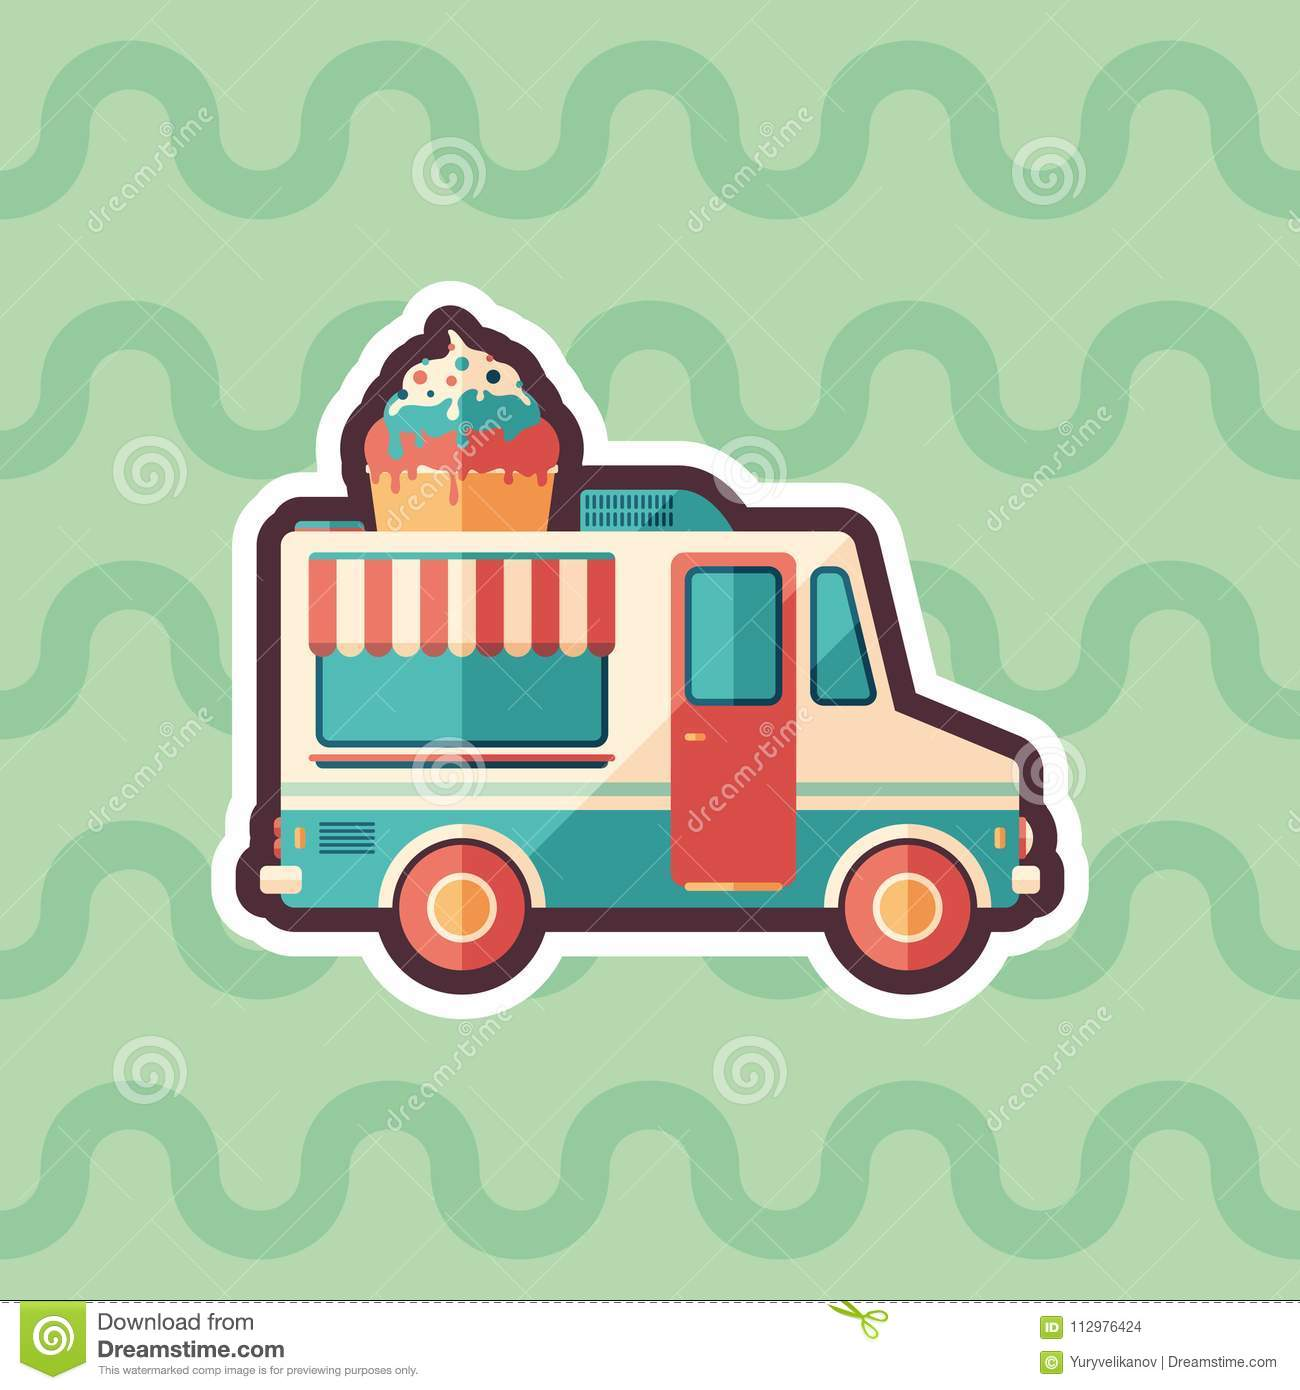 Ice cream van sticker flat icon with color background.